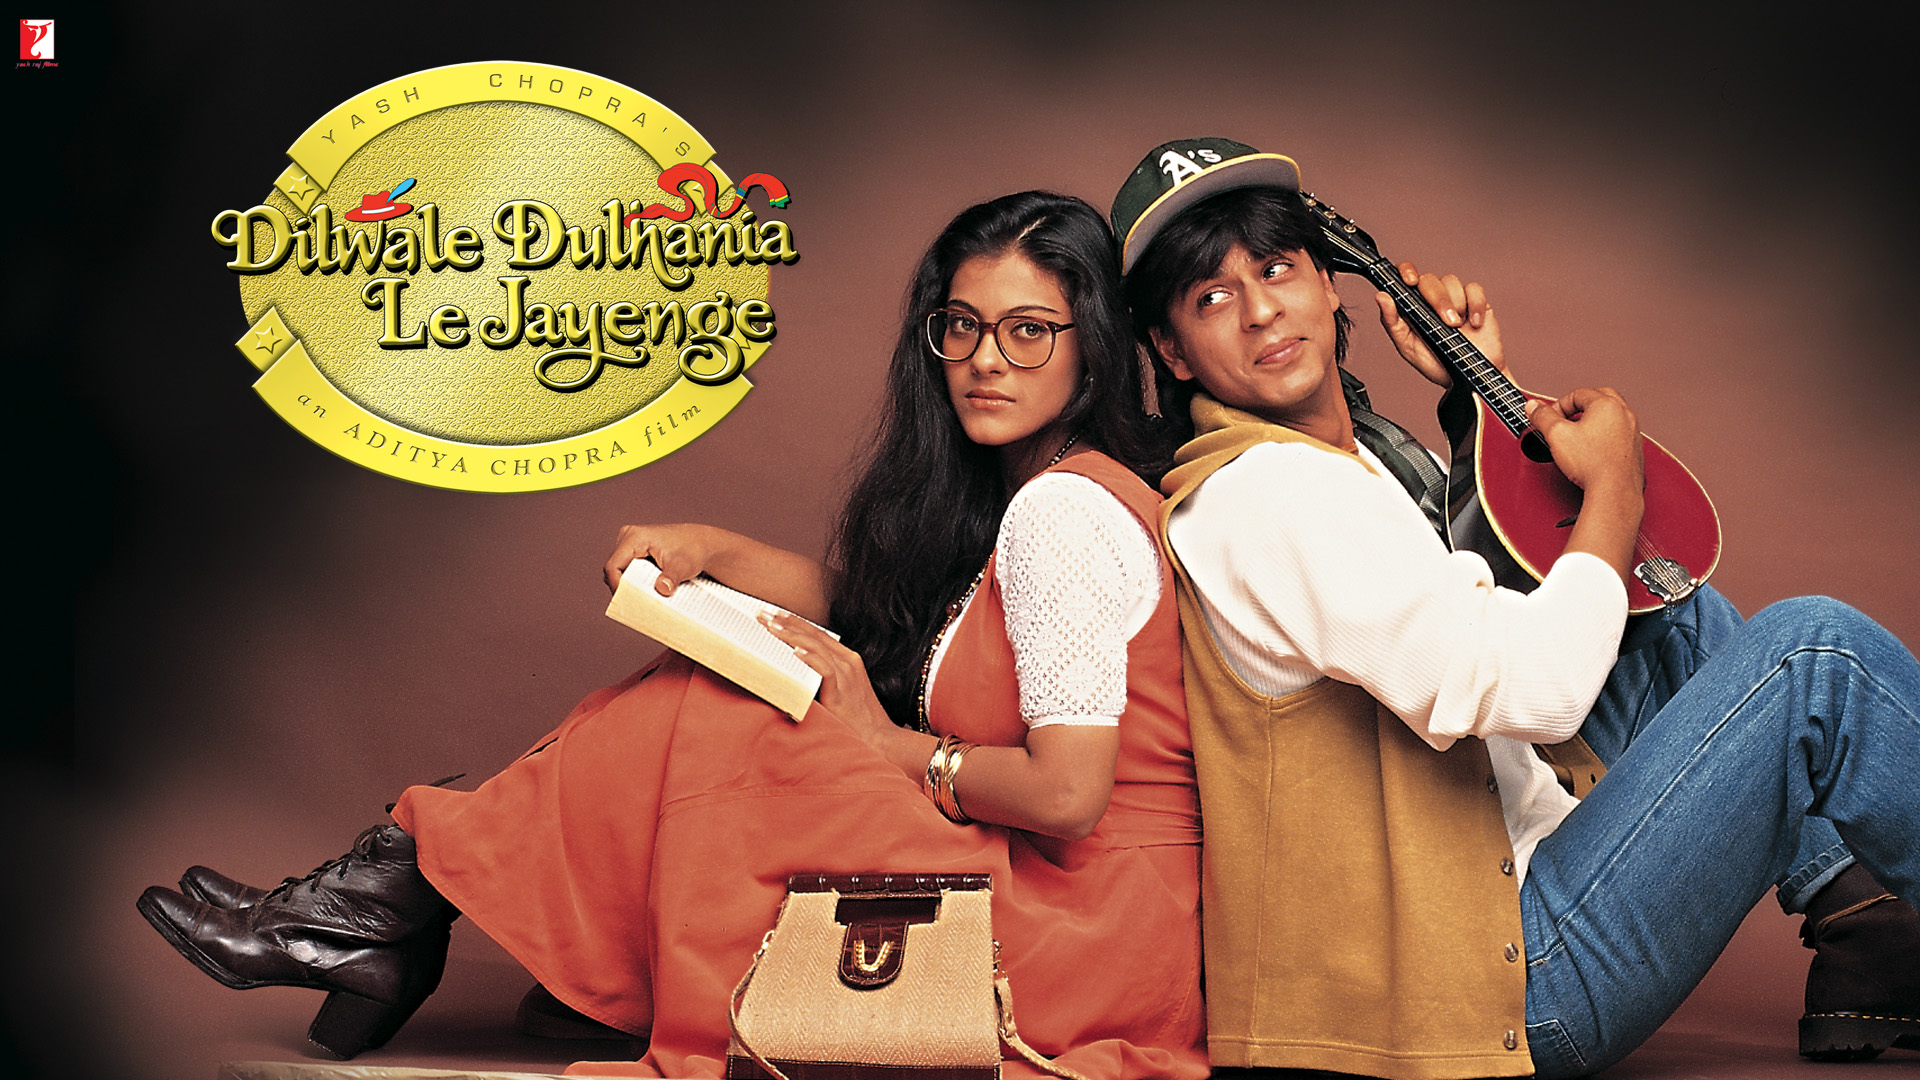 Dilwale Dulhania Le Jayenge Poster Landscape Shah Rukh Khan and Kajol voted most romantic Bollywood couple in new poll